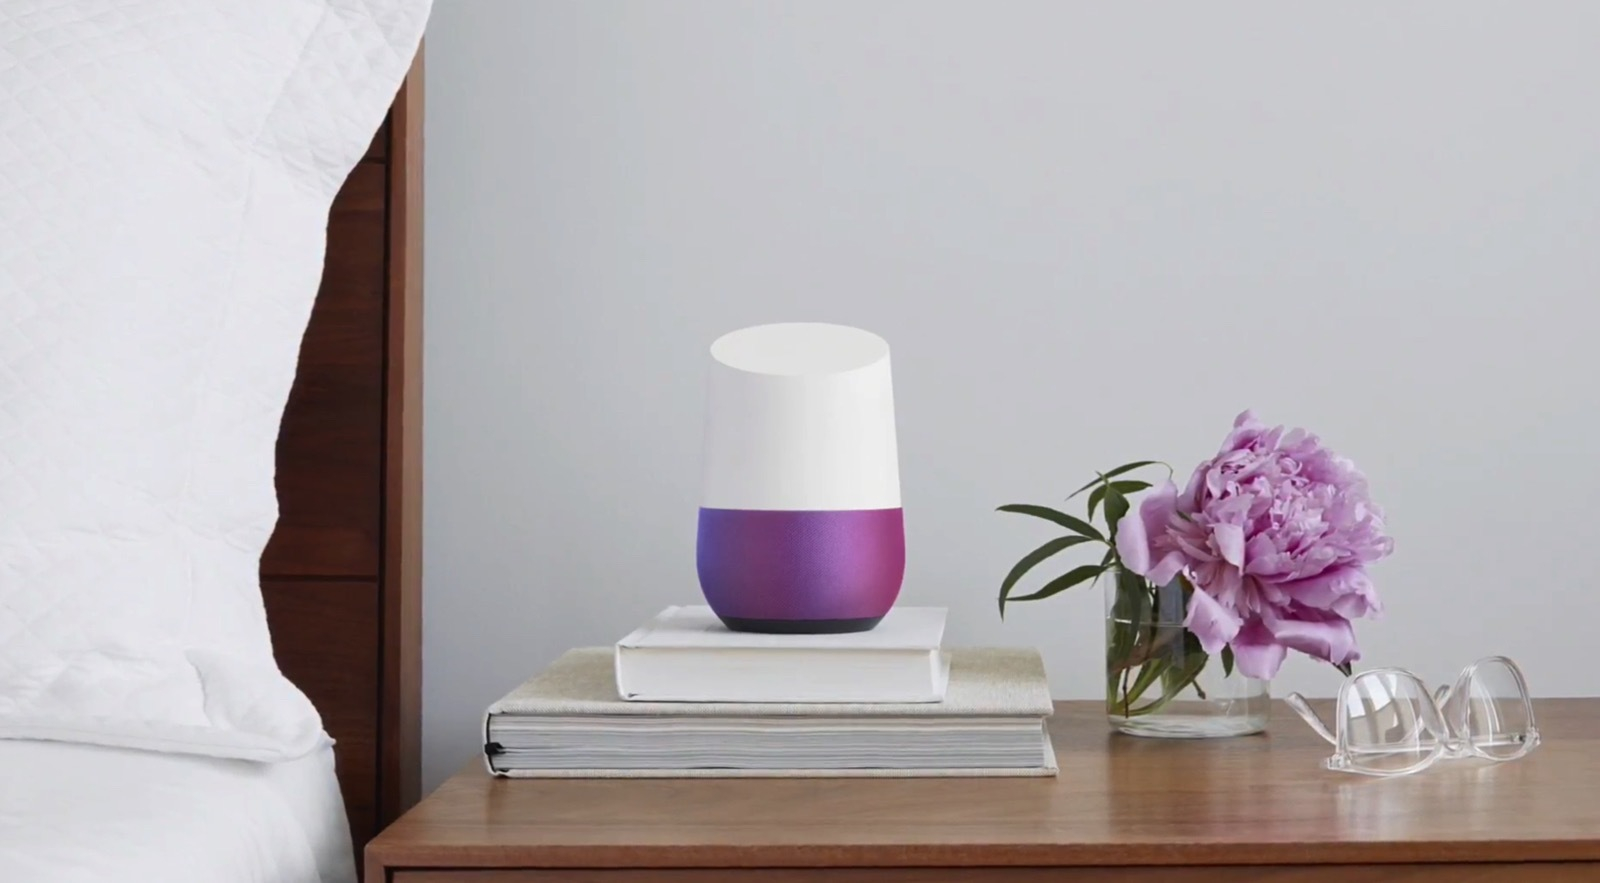 google-home-will-allegedly-be-priced-at-130_image-0